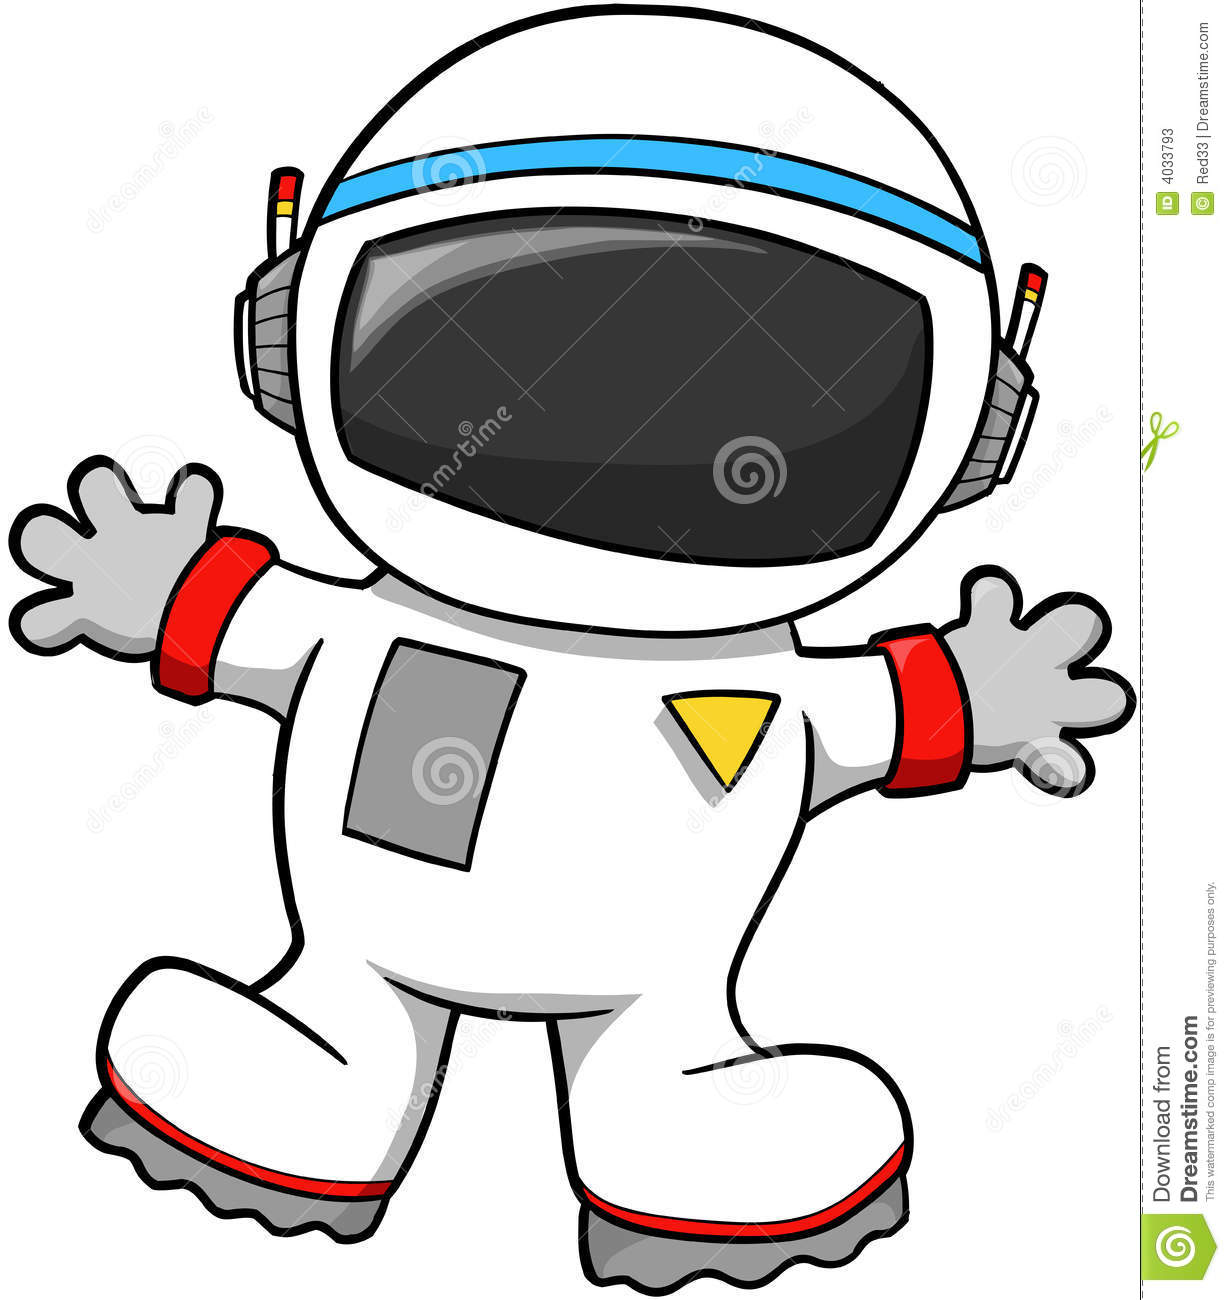 Astronaut Vector Stock Photos   Image  4033793